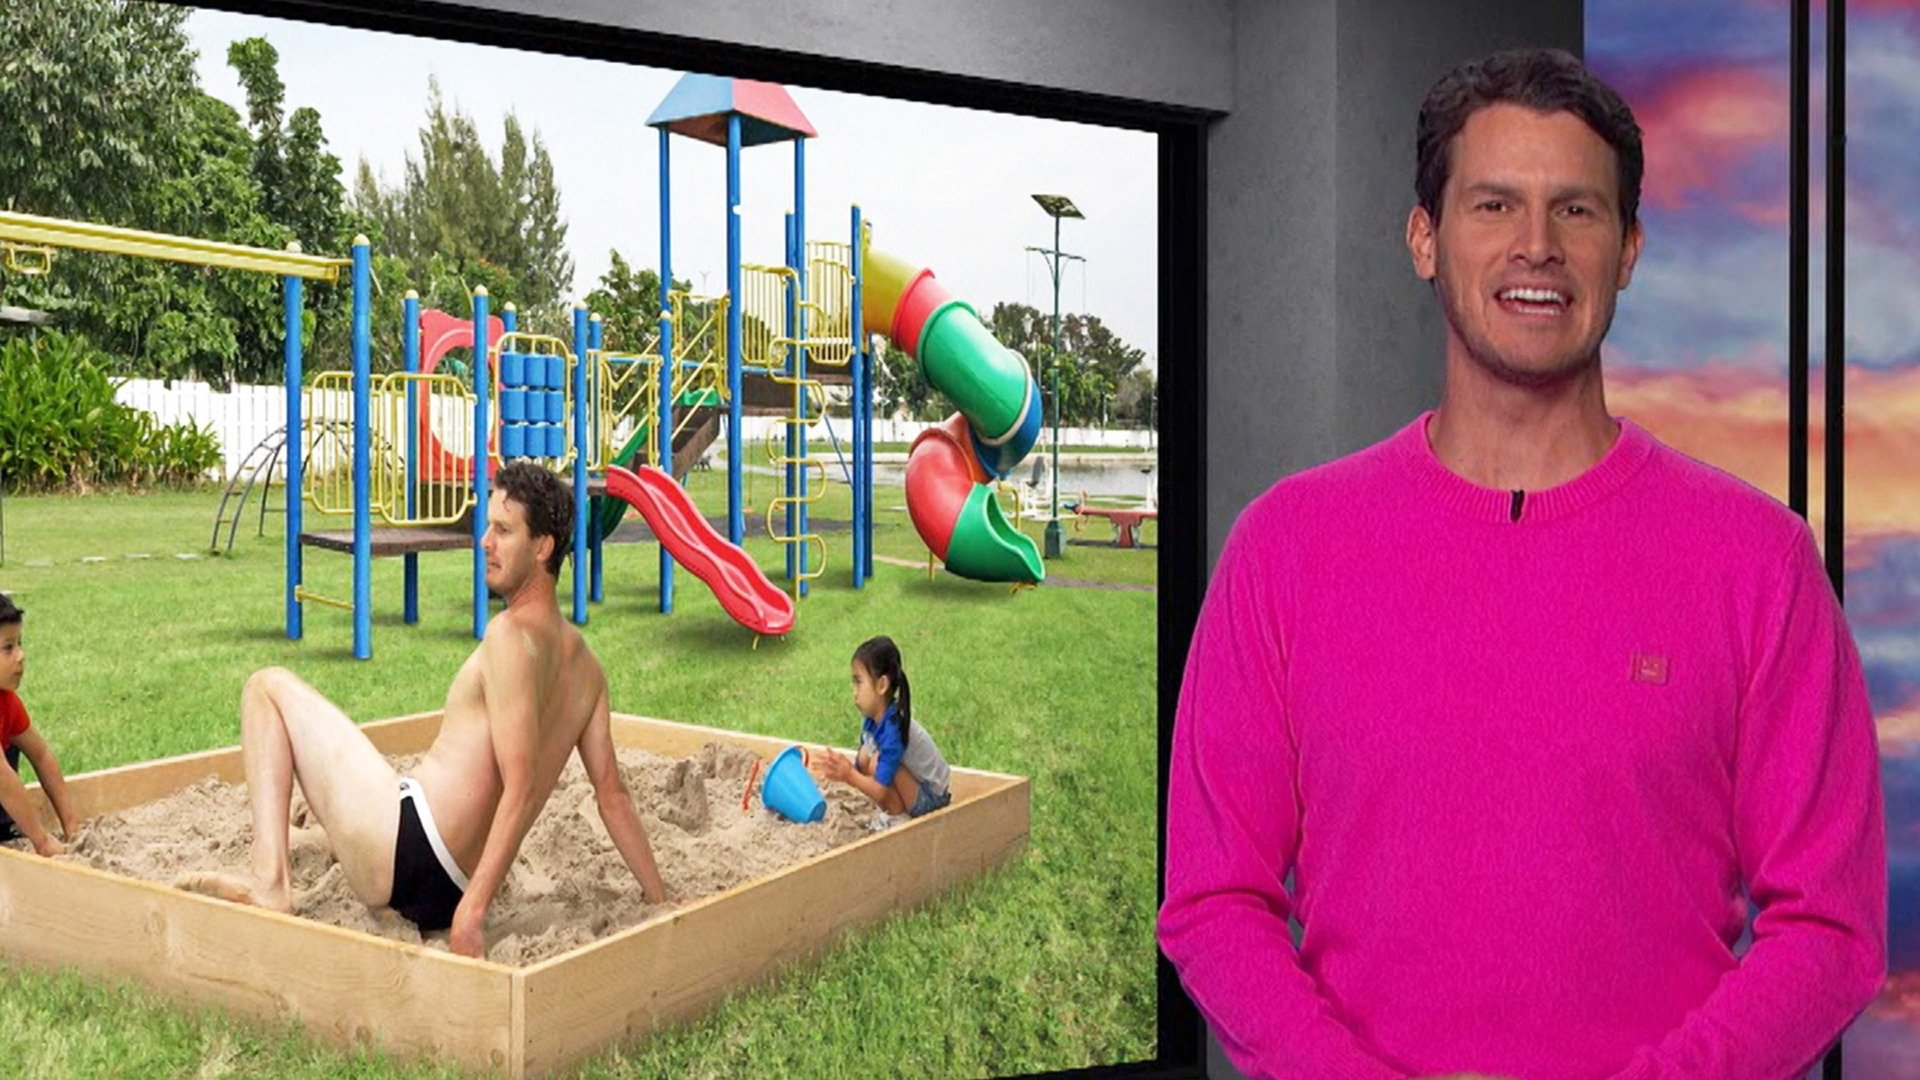 Watch Season 11 Of Tosh 0 Free Streaming Online Plex Daniel invites stevewilldoit onto the game show wheel of chug and tries to determine if there's anything he won't chug. mediaverse by plex tv plex